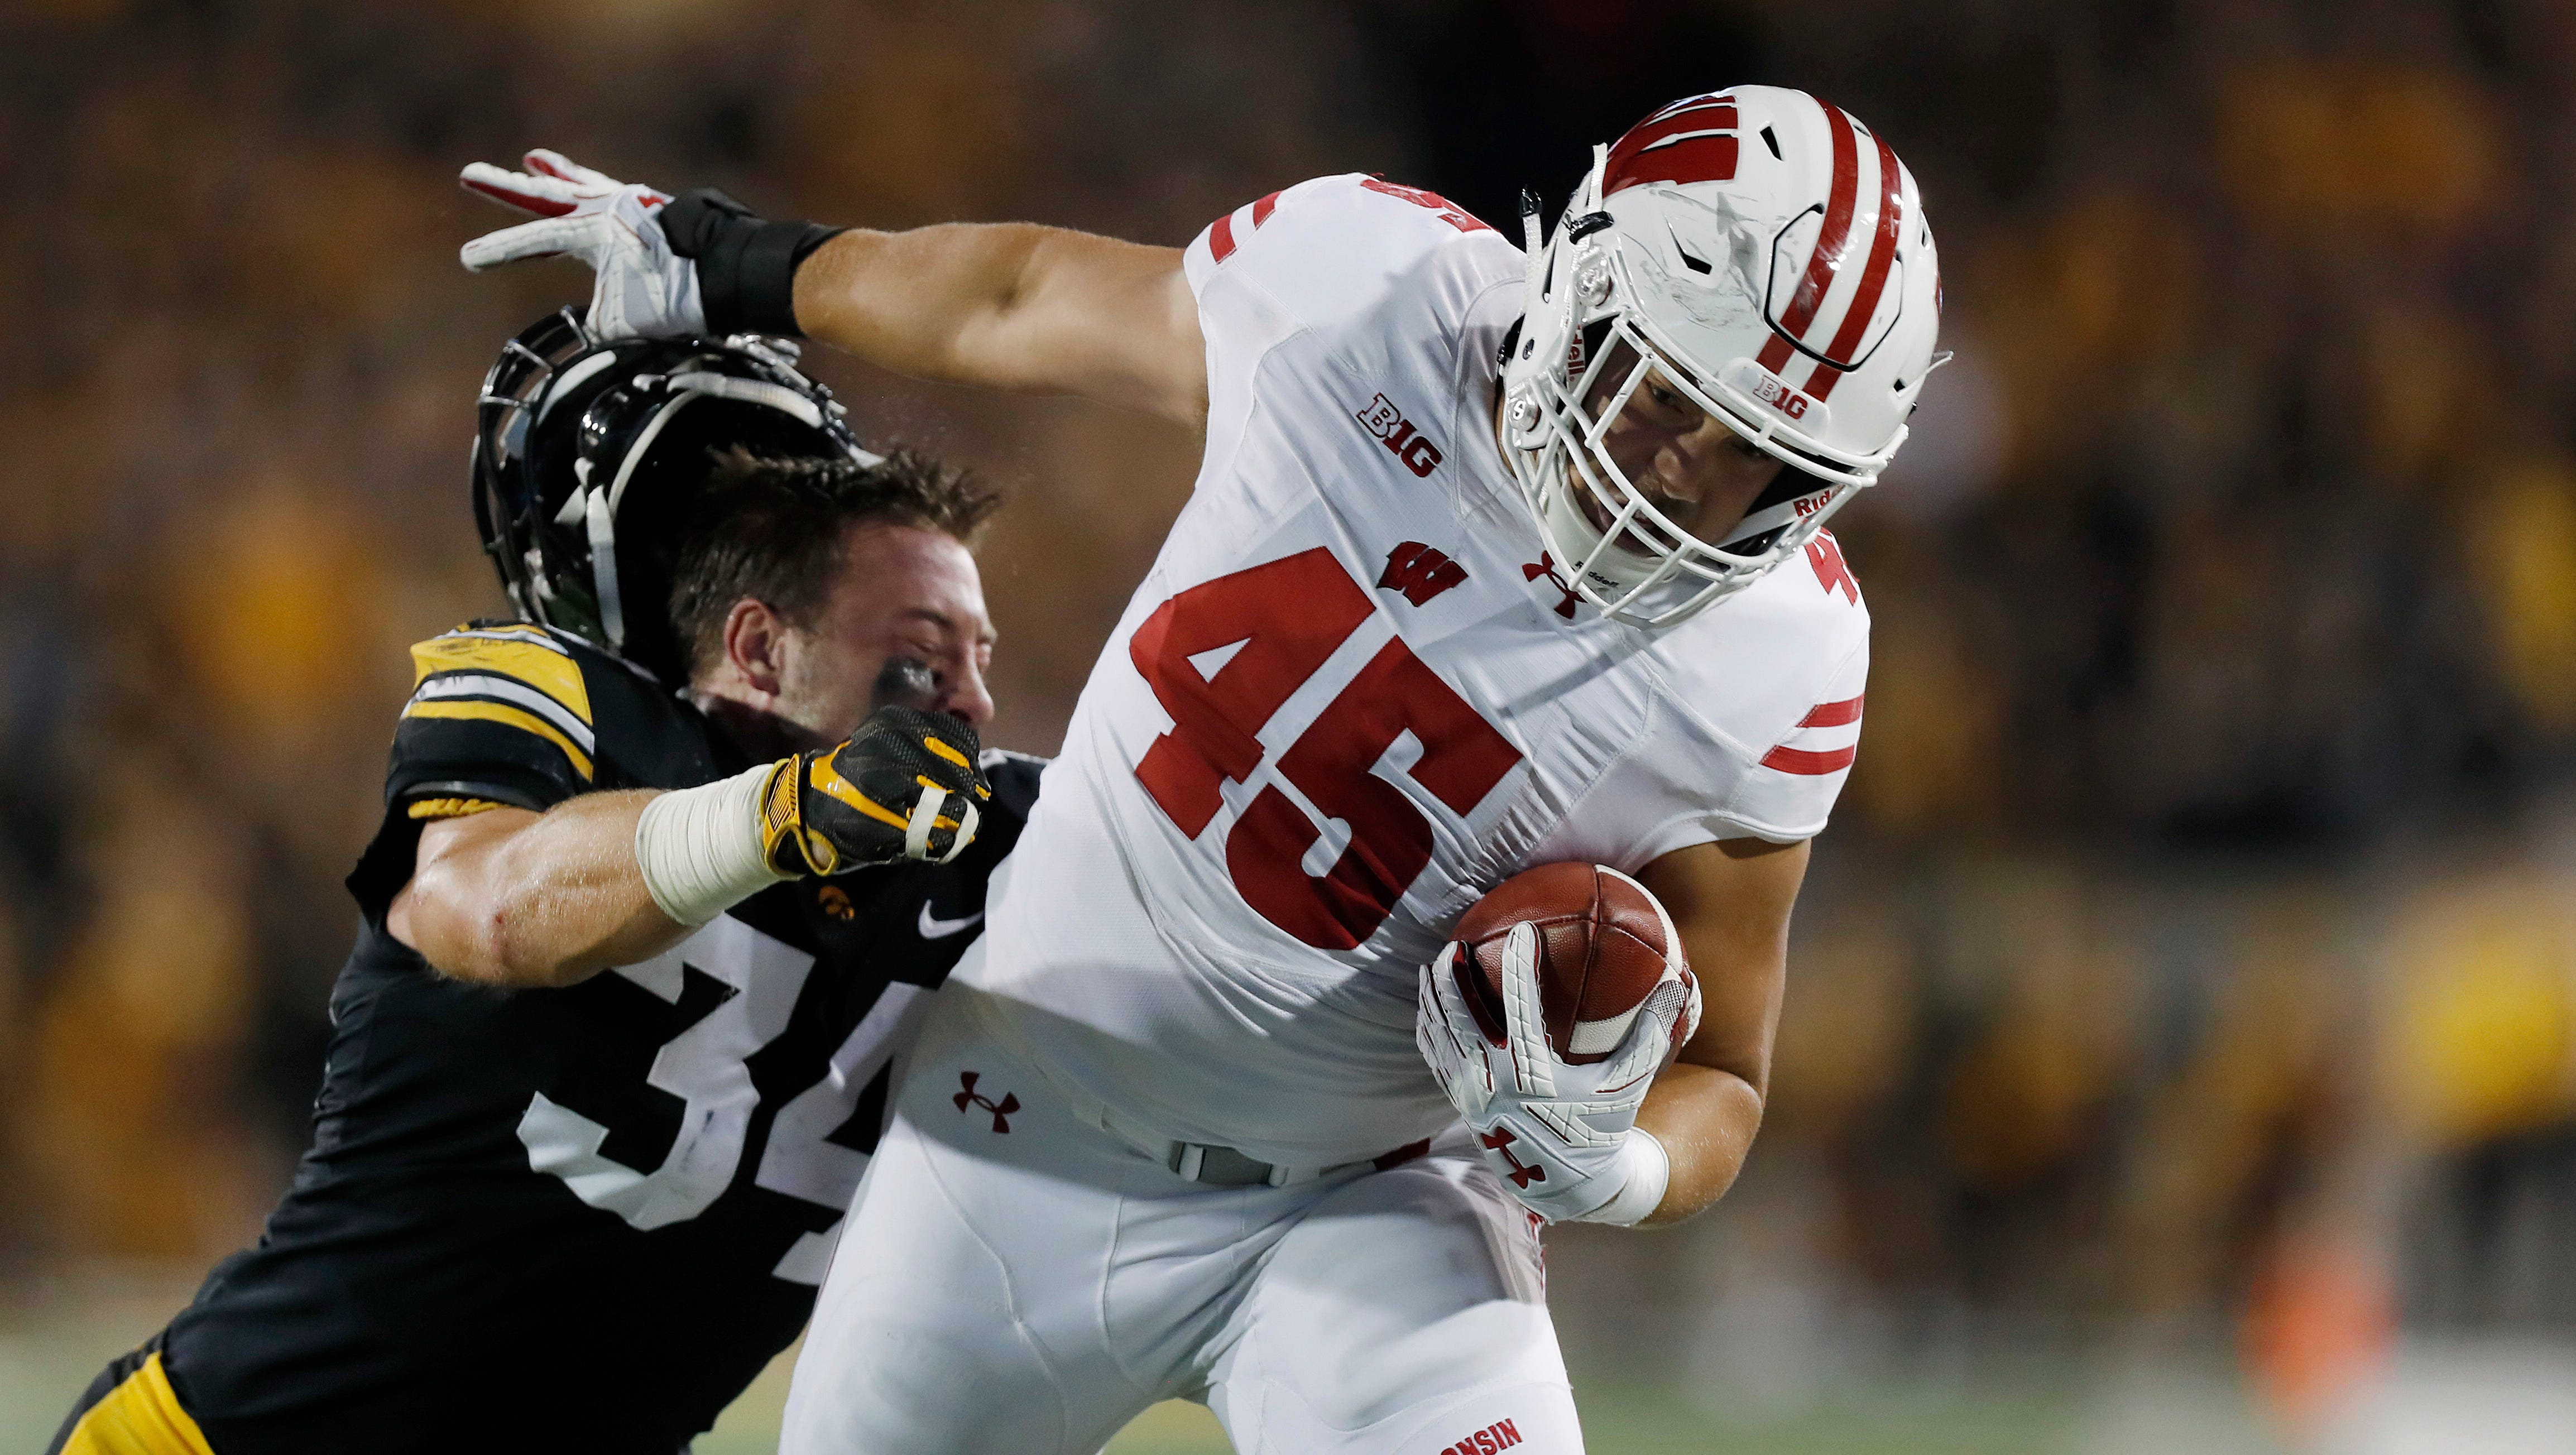 4. Wisconsin (3-1) | Last game: Defeated Iowa, 28-17 | Previous ranking: 5